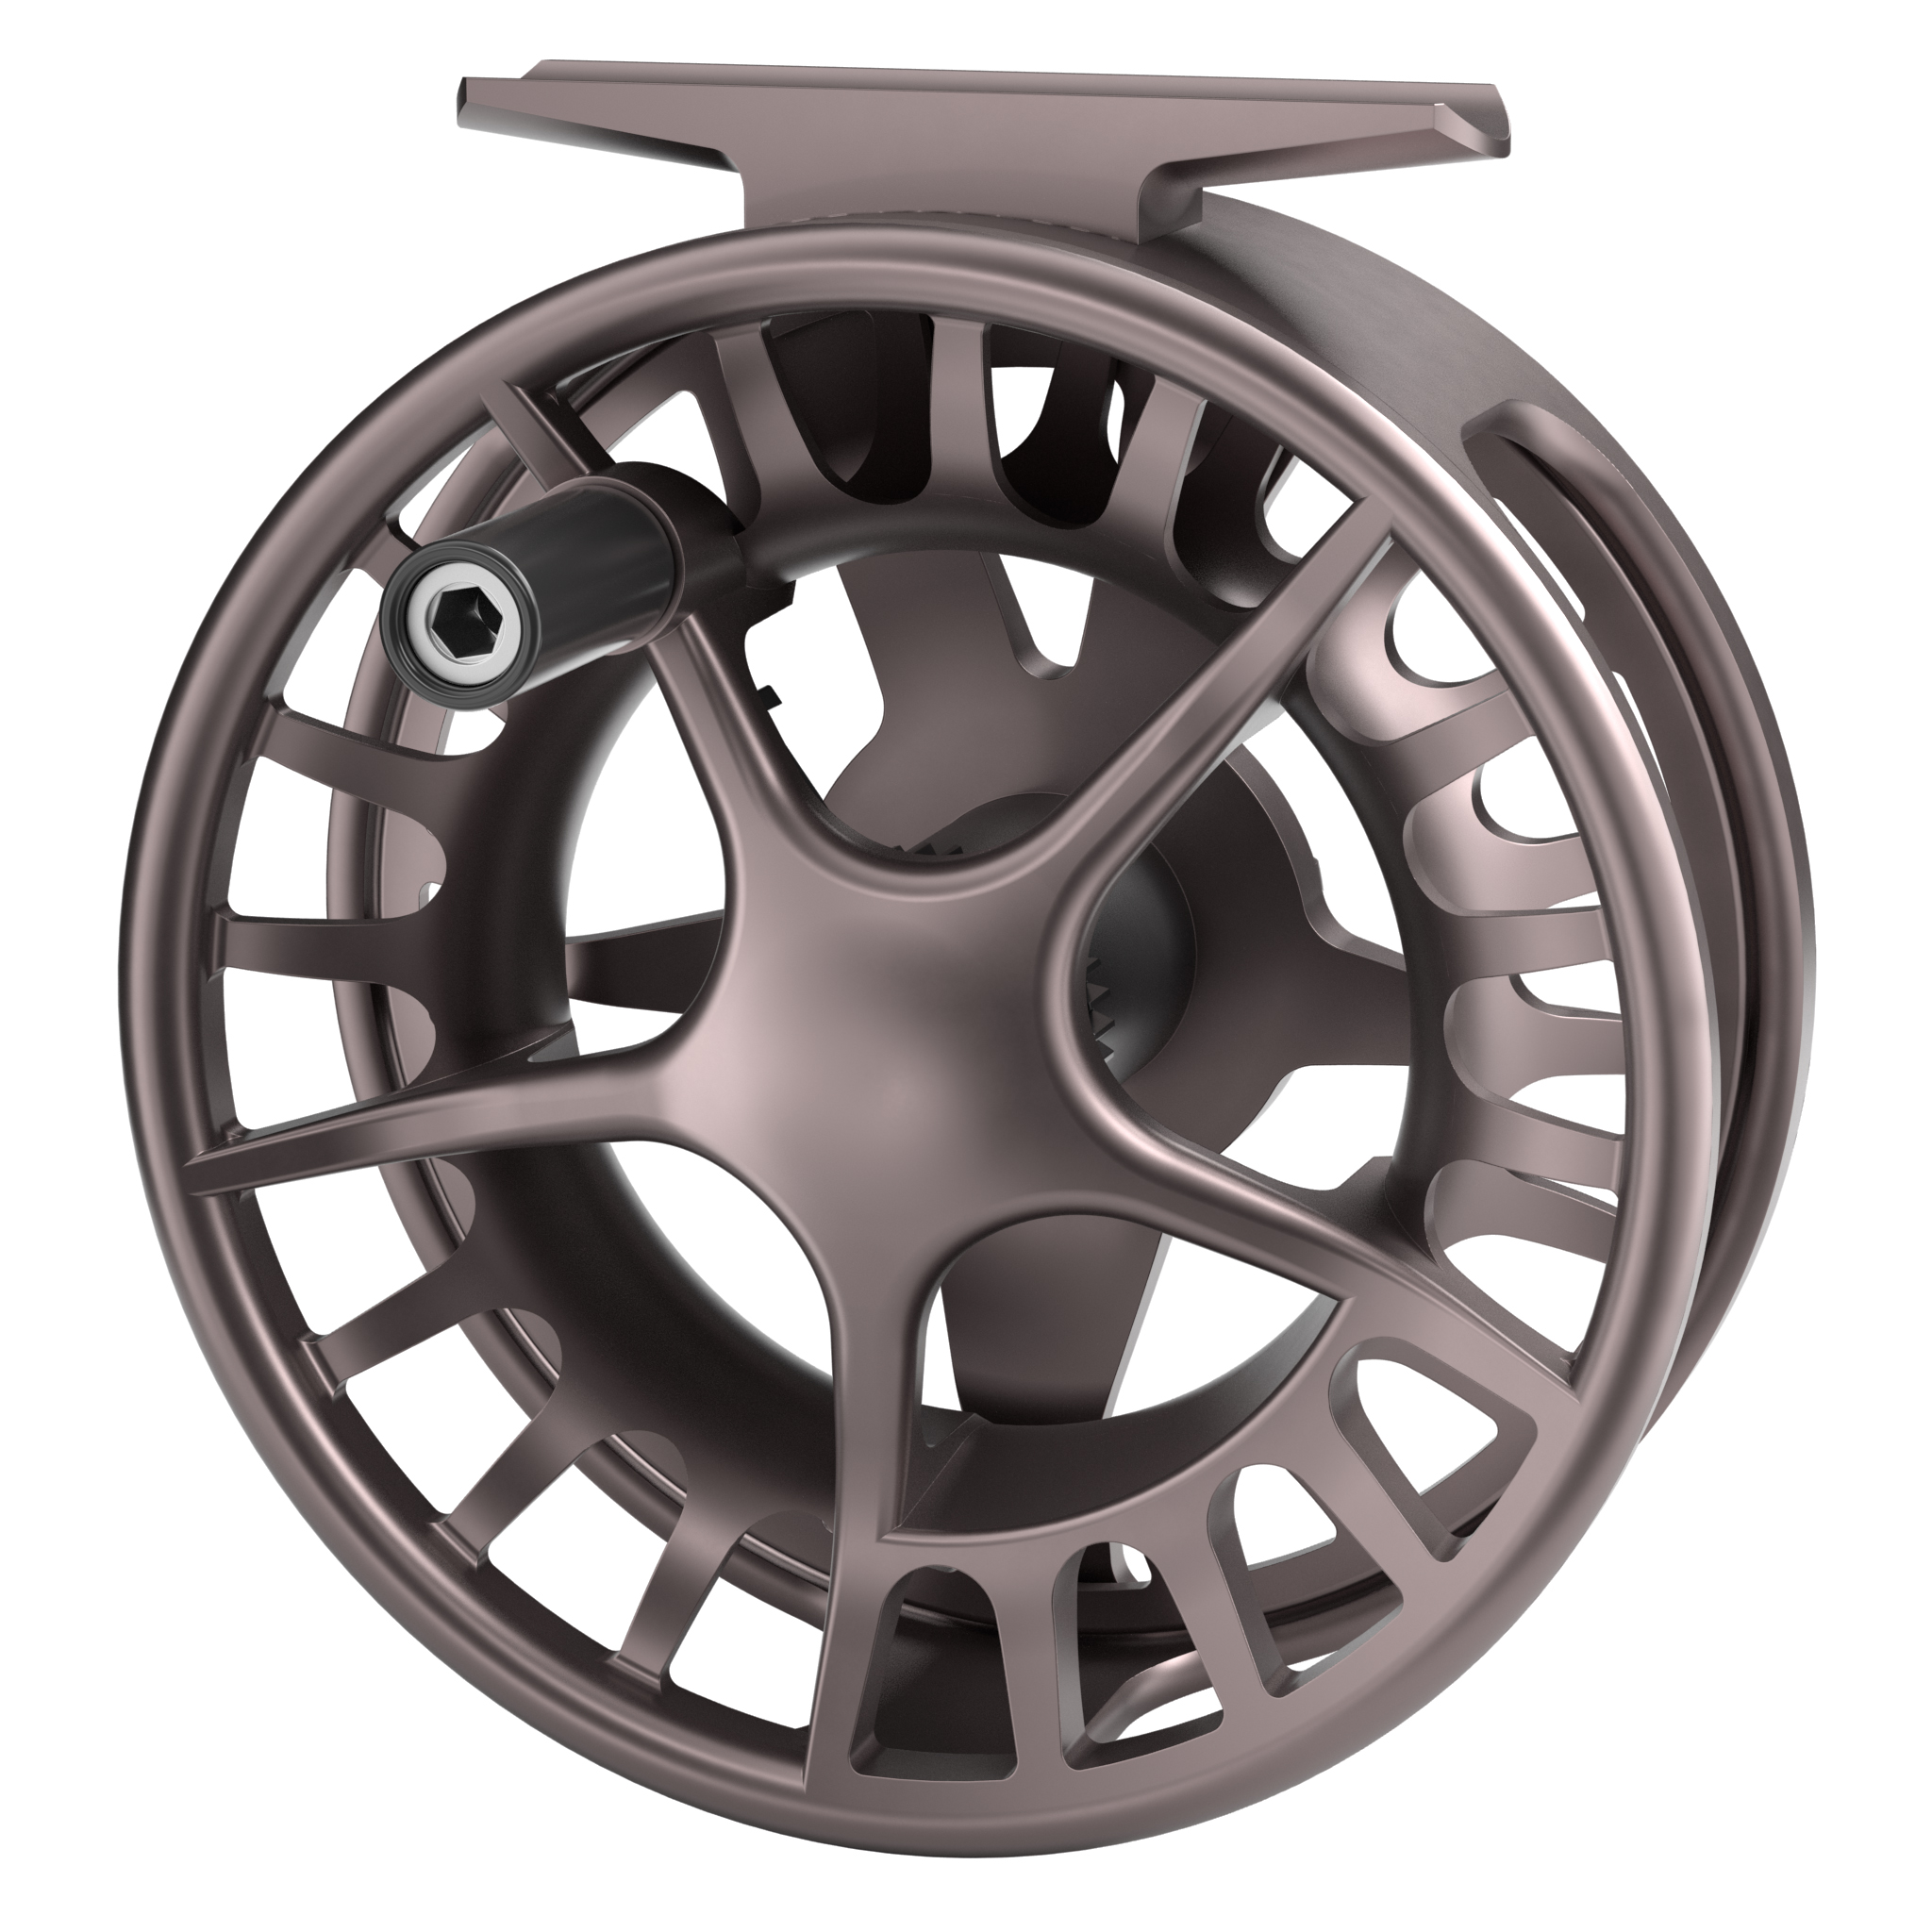 Lamson Remix 4 HD 3-Pack Reel and 2 Spools USA Free Backing Free Fast Shipping